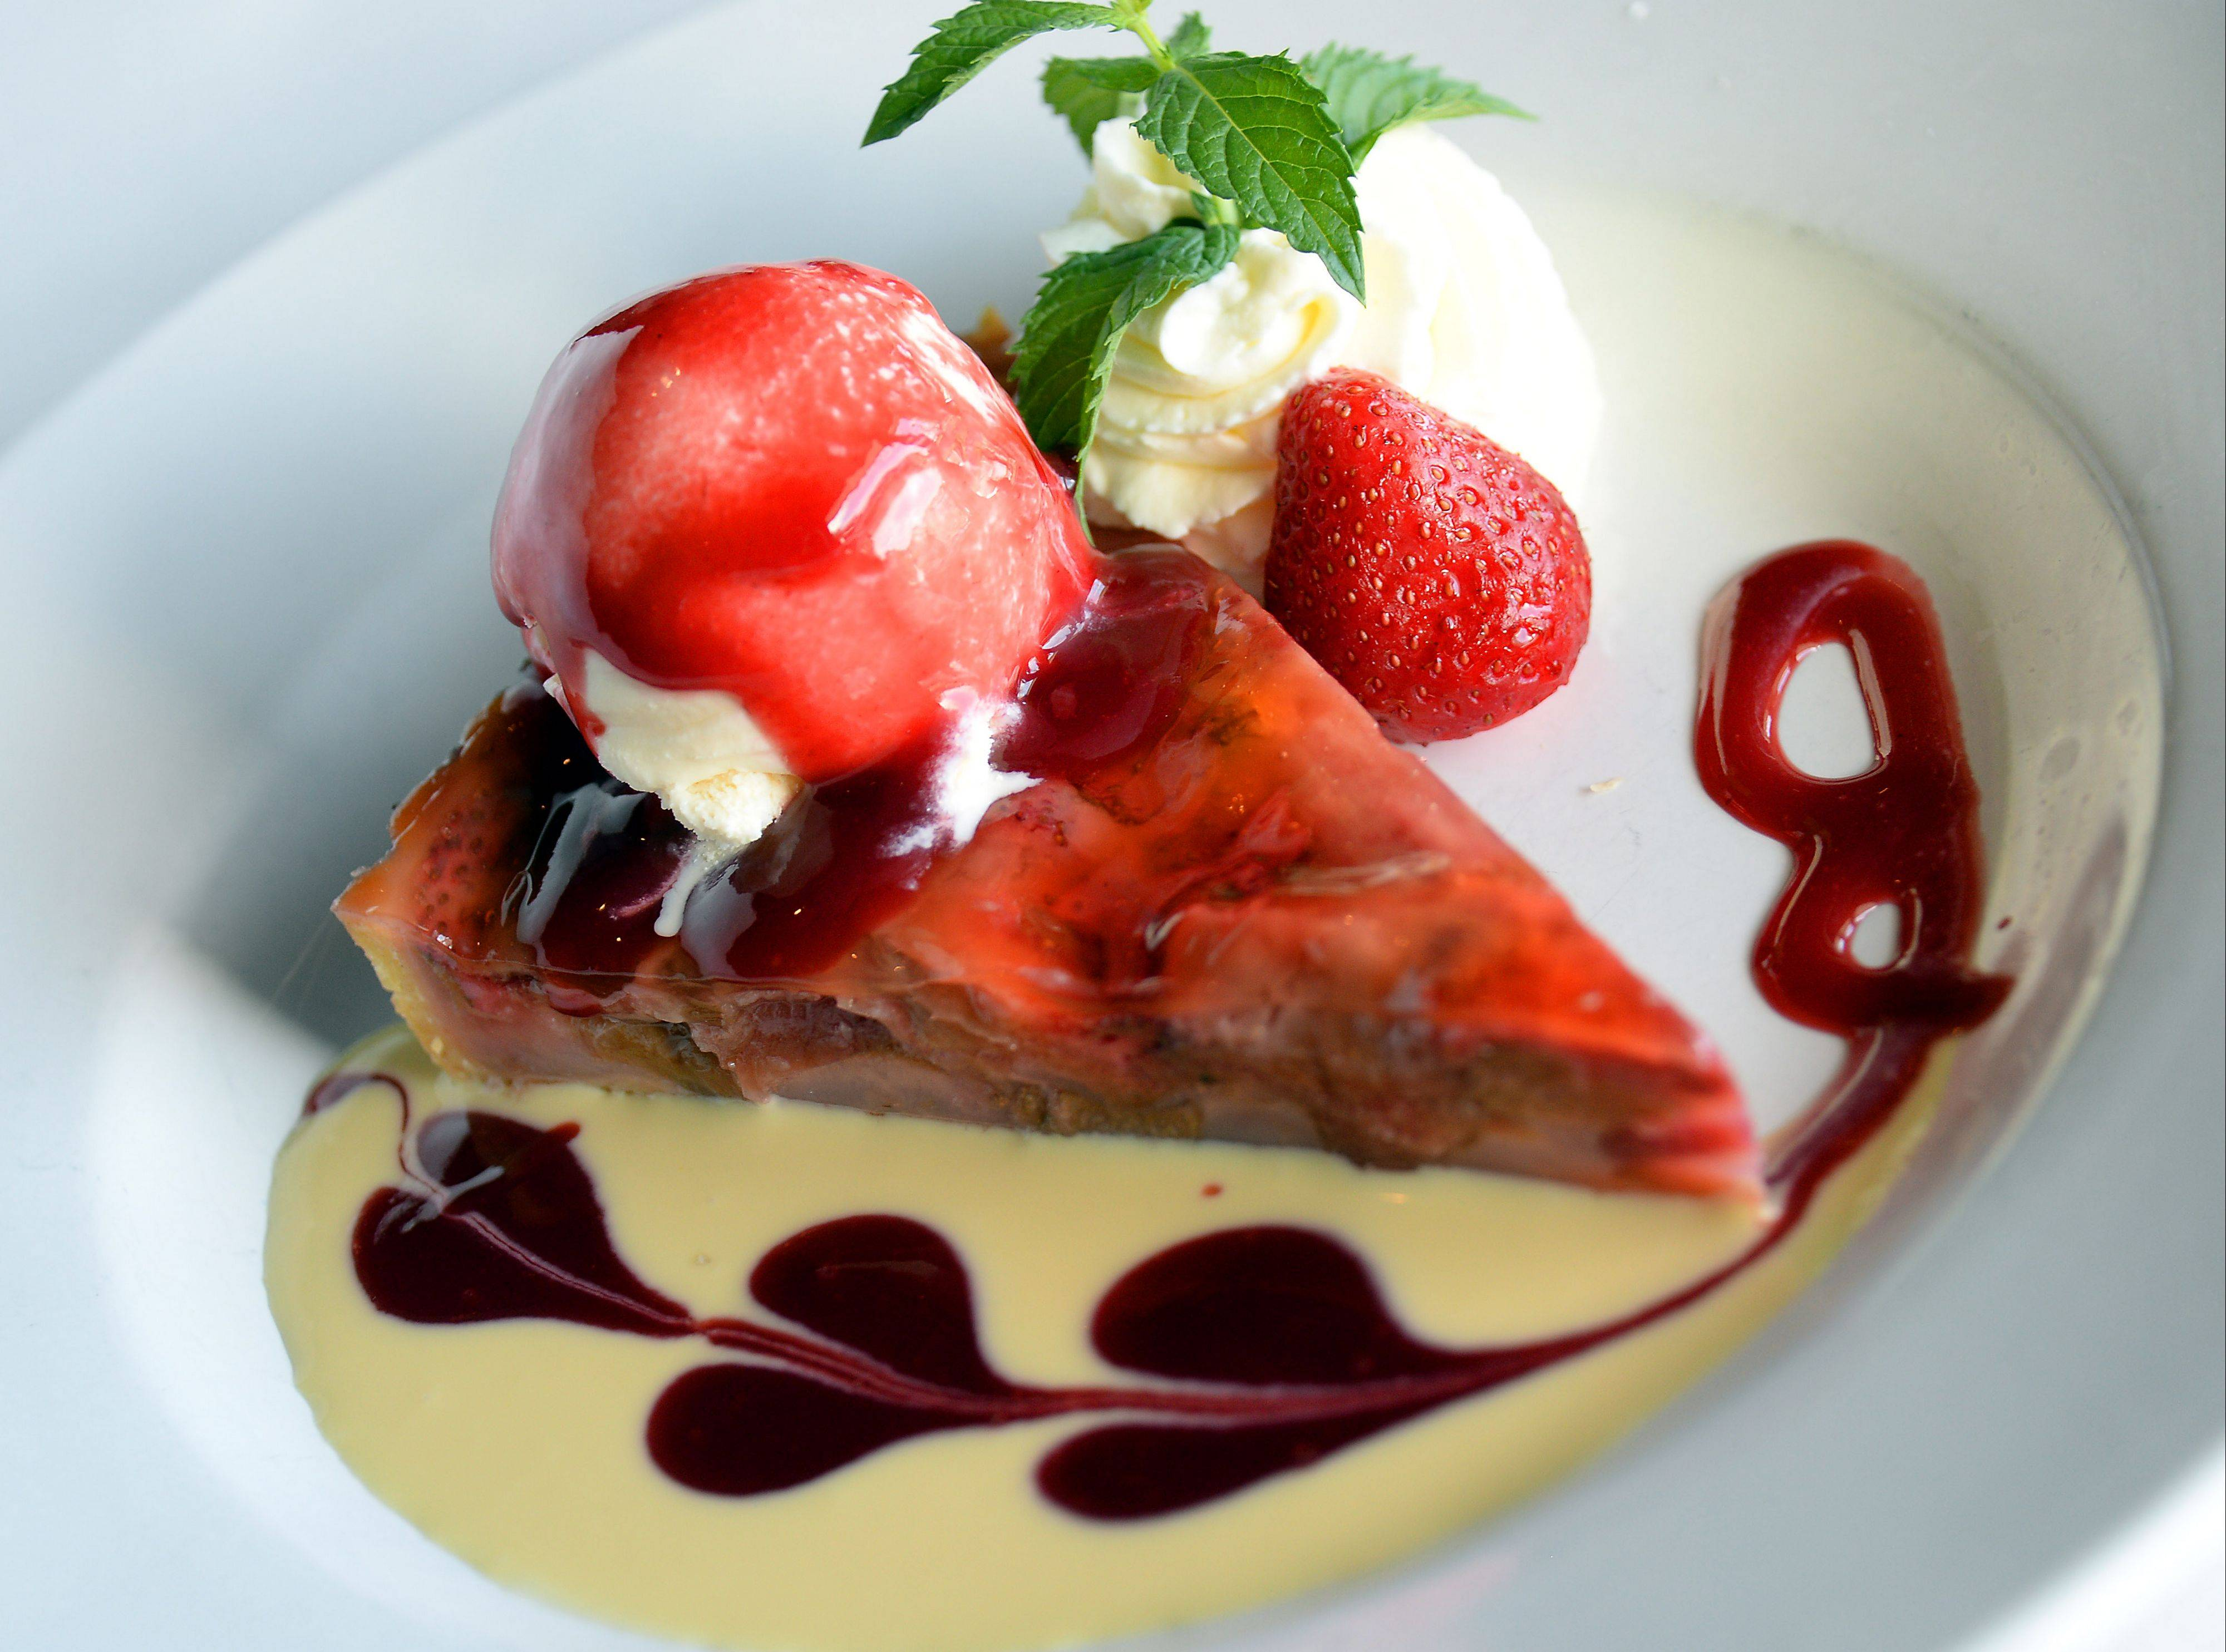 Rhubarb and strawberry blend brilliantly in this dessert tart at Retro Bistro in Mount Prospect.